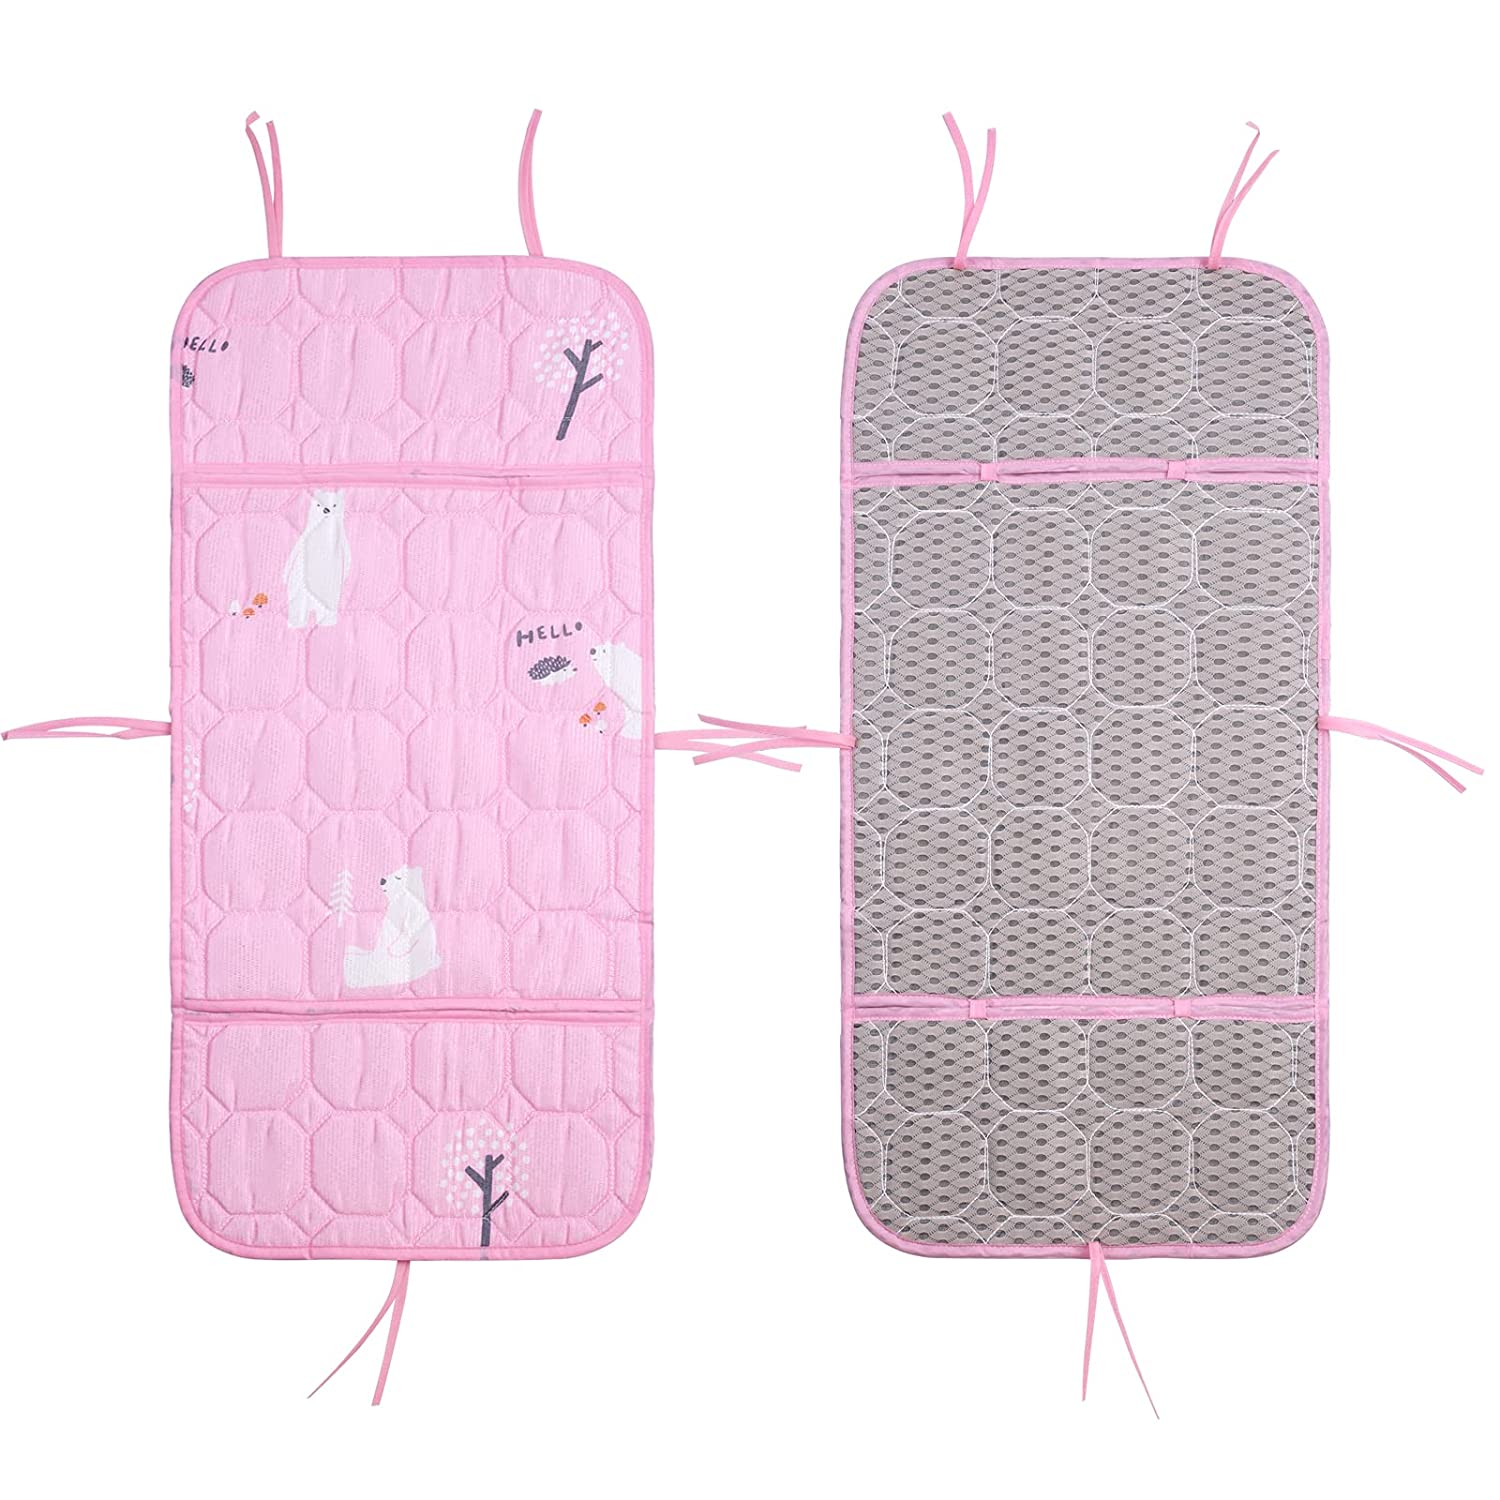 Natural Latex Stroller Liner, Baby Car Seat Cooler Mats, Cooling Feeding Chair Cover, 3D Mesh Liner Seat Pad-Comfortable Cushion Mat for Baby